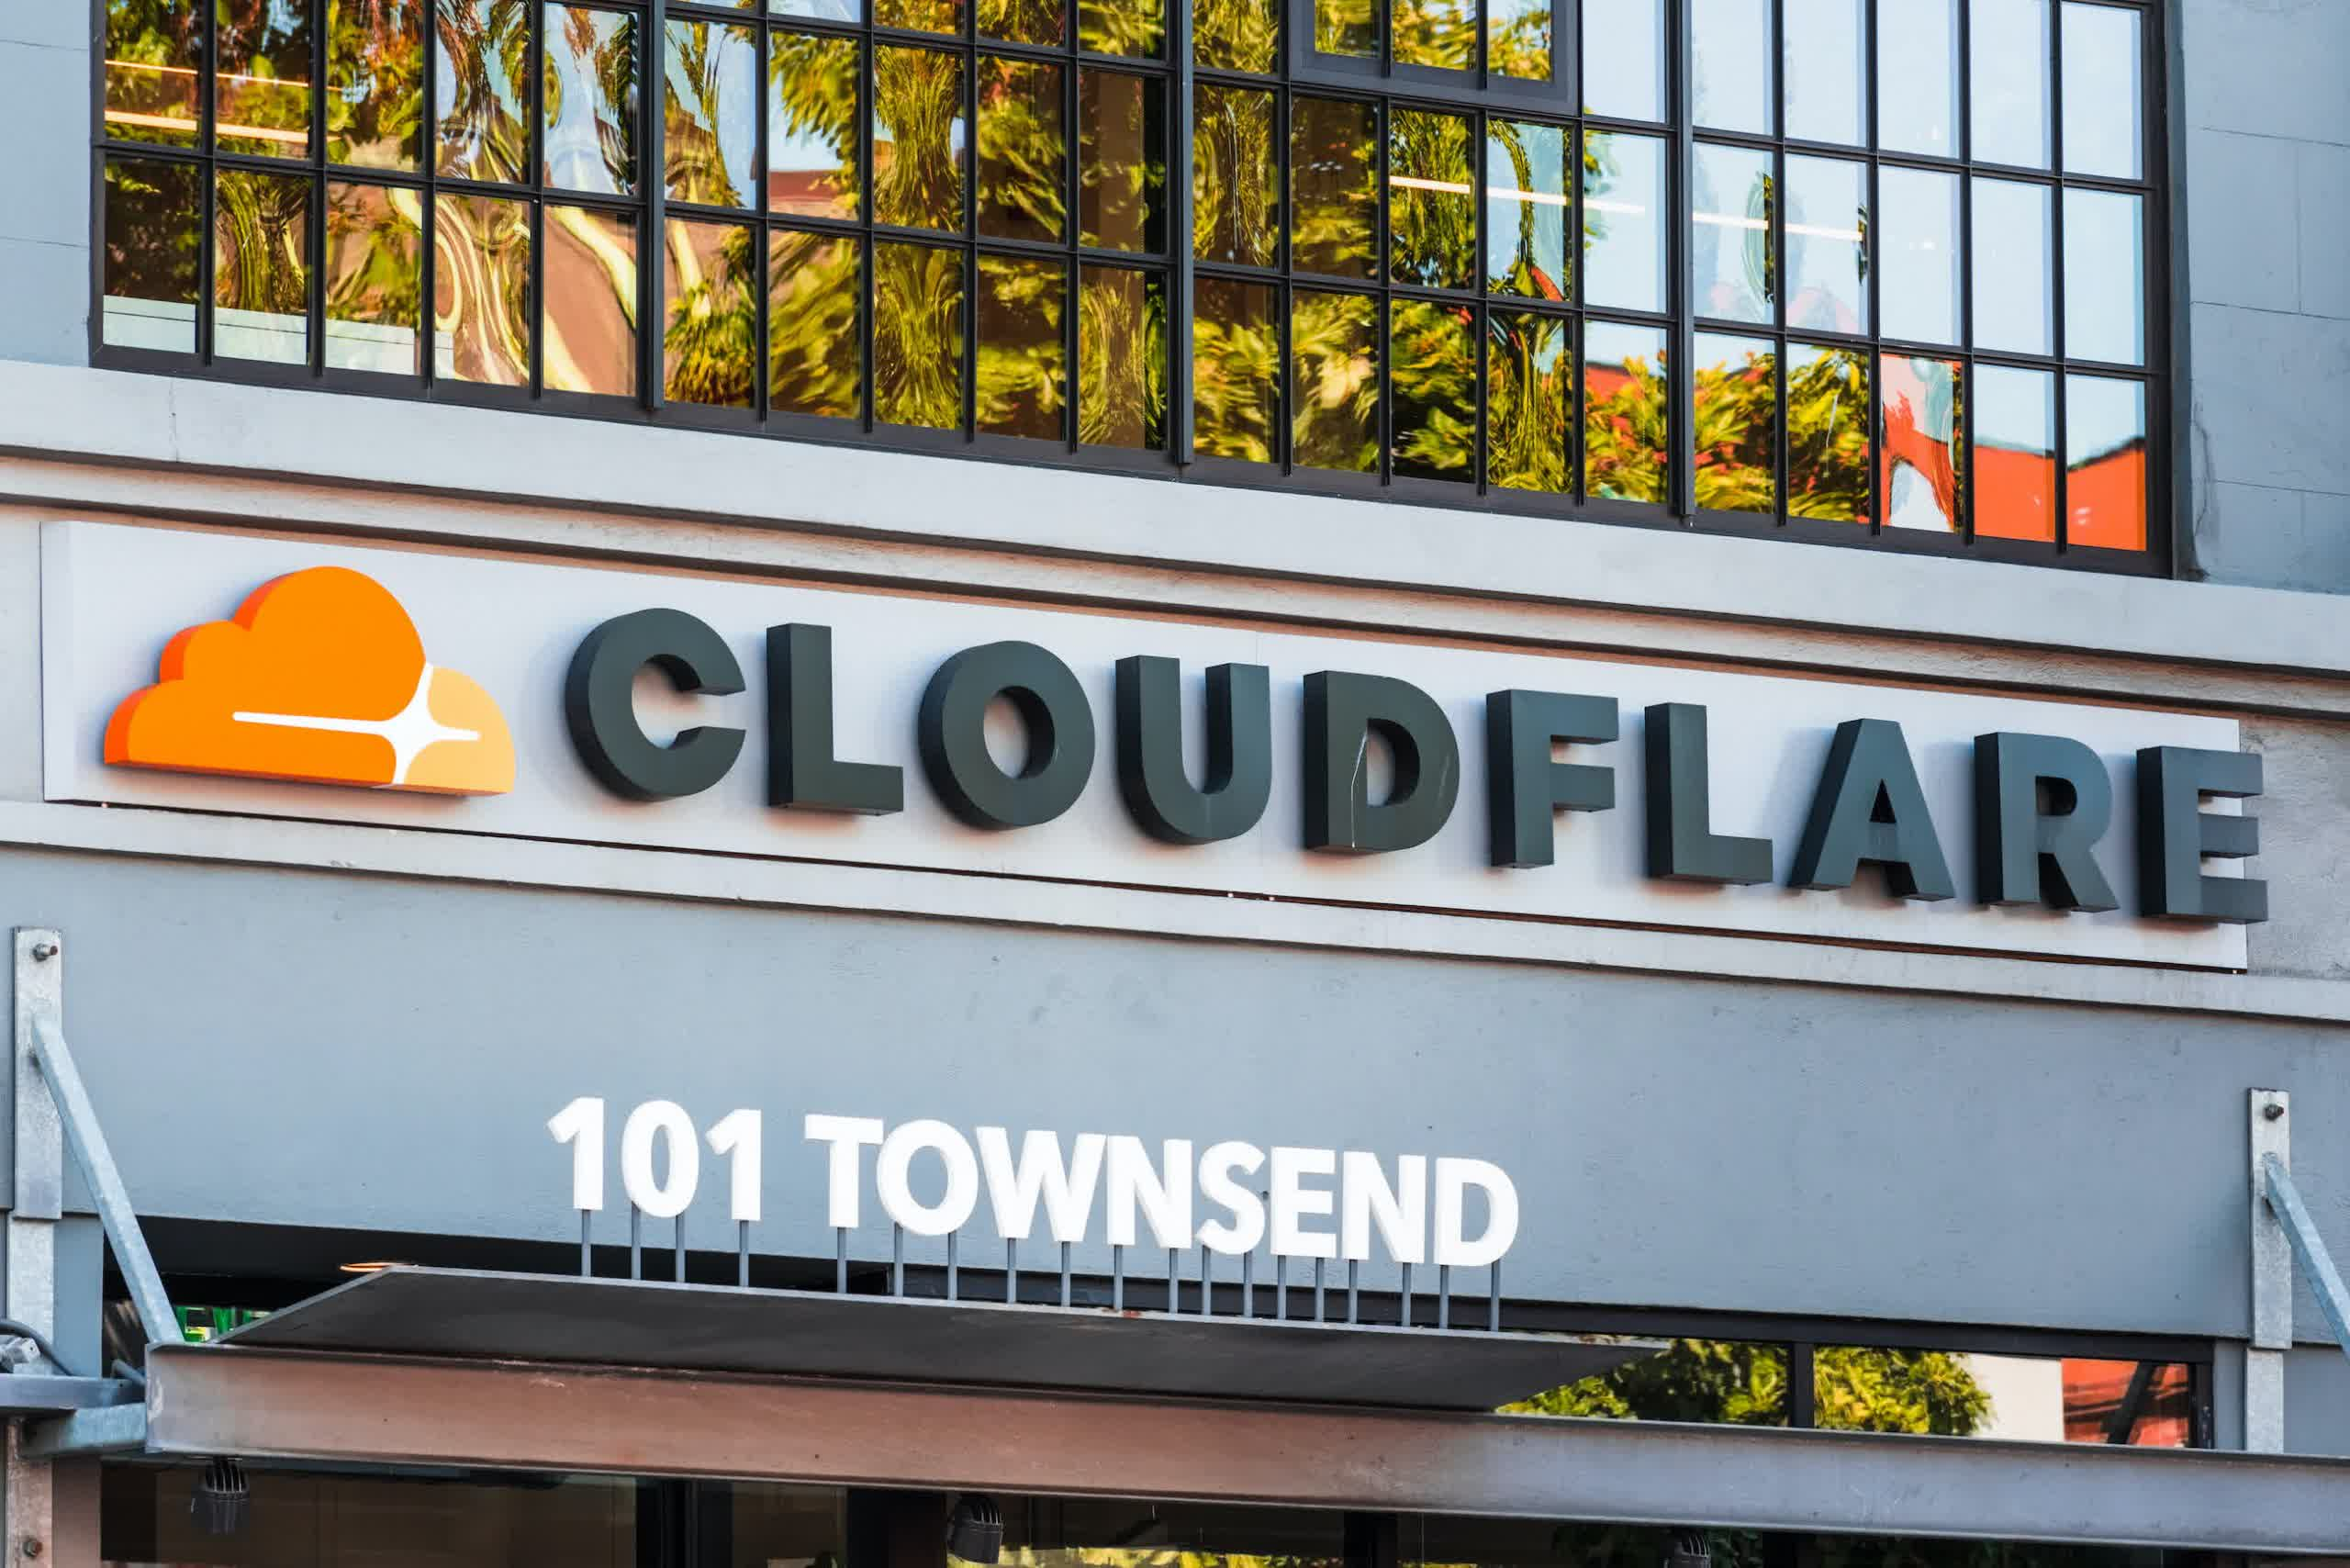 Cloudflare says in 10 years cybersecurity will be more like a 'water filtration system'